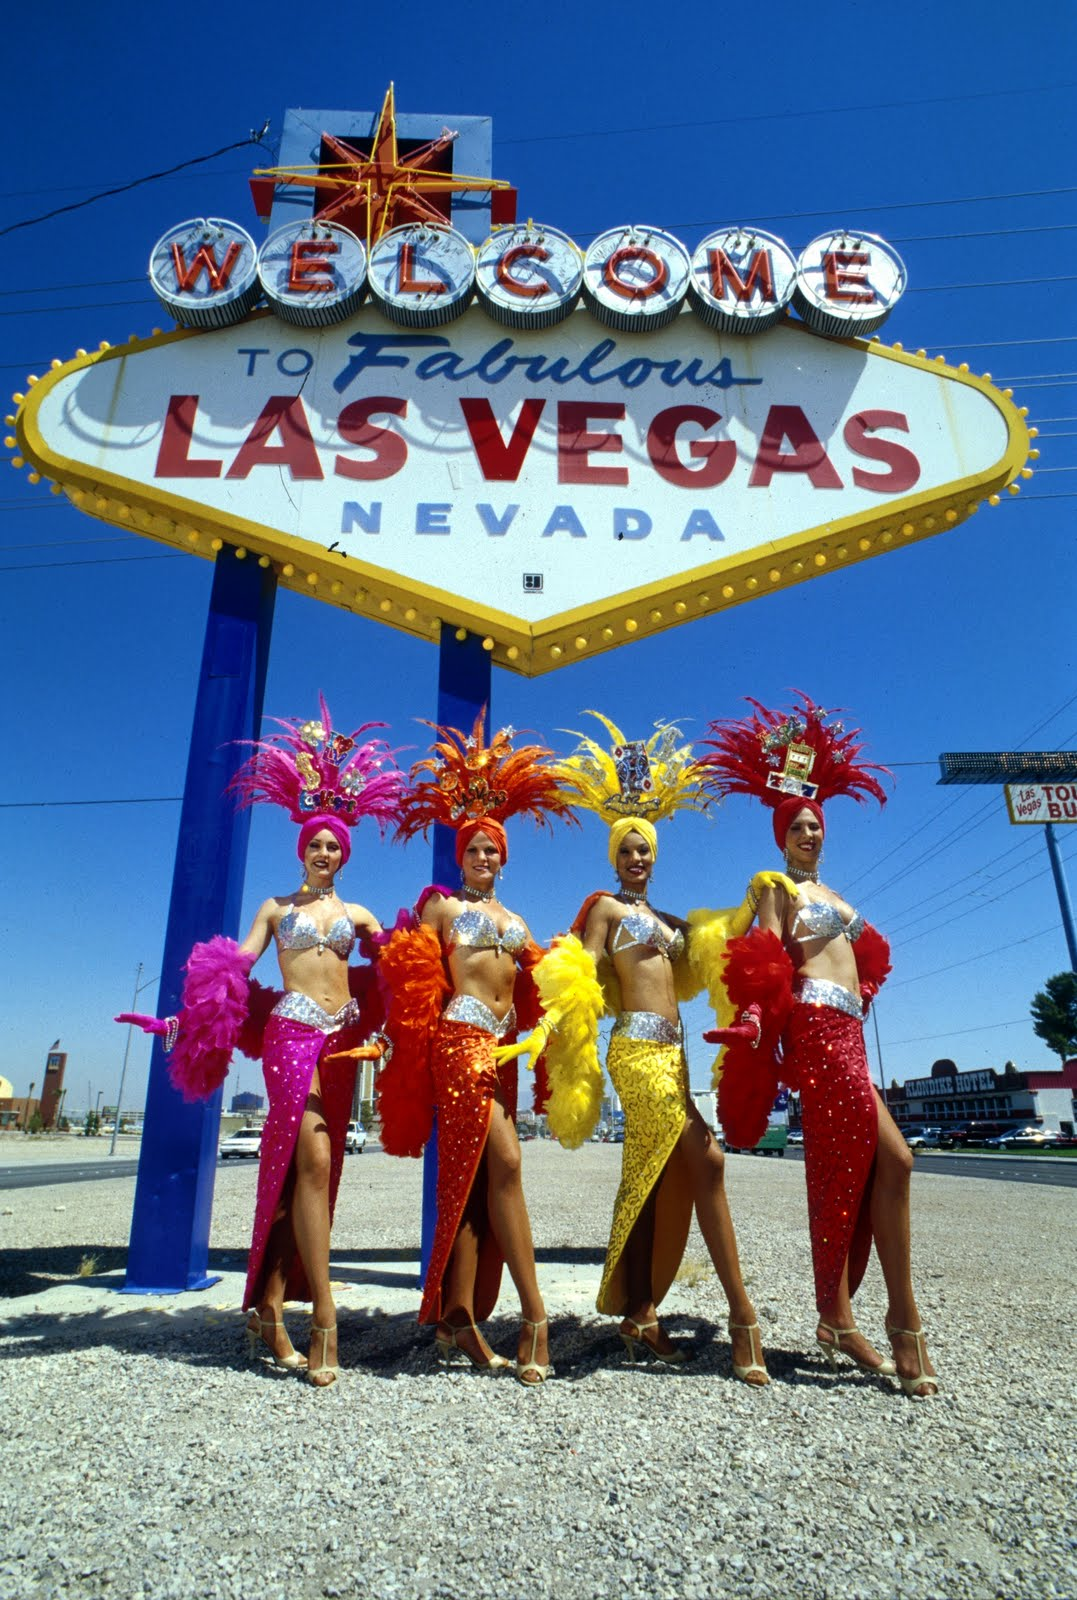 maps of dallas Las Vegas Nevada USA Tourist Guide – Tourist Attractions Map In Nevada